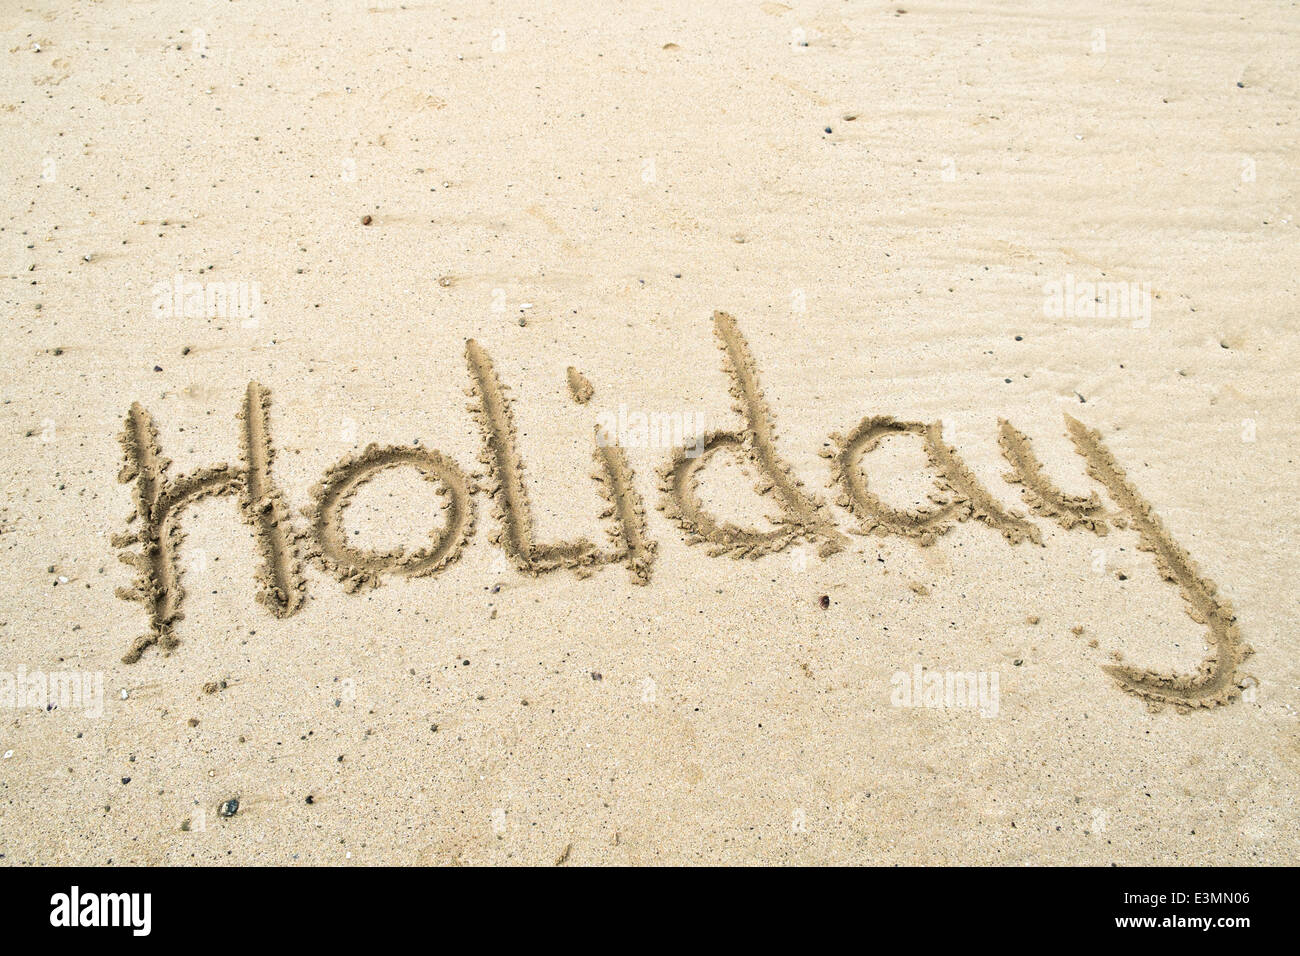 The Word holiday written in sand on a beach - Stock Image